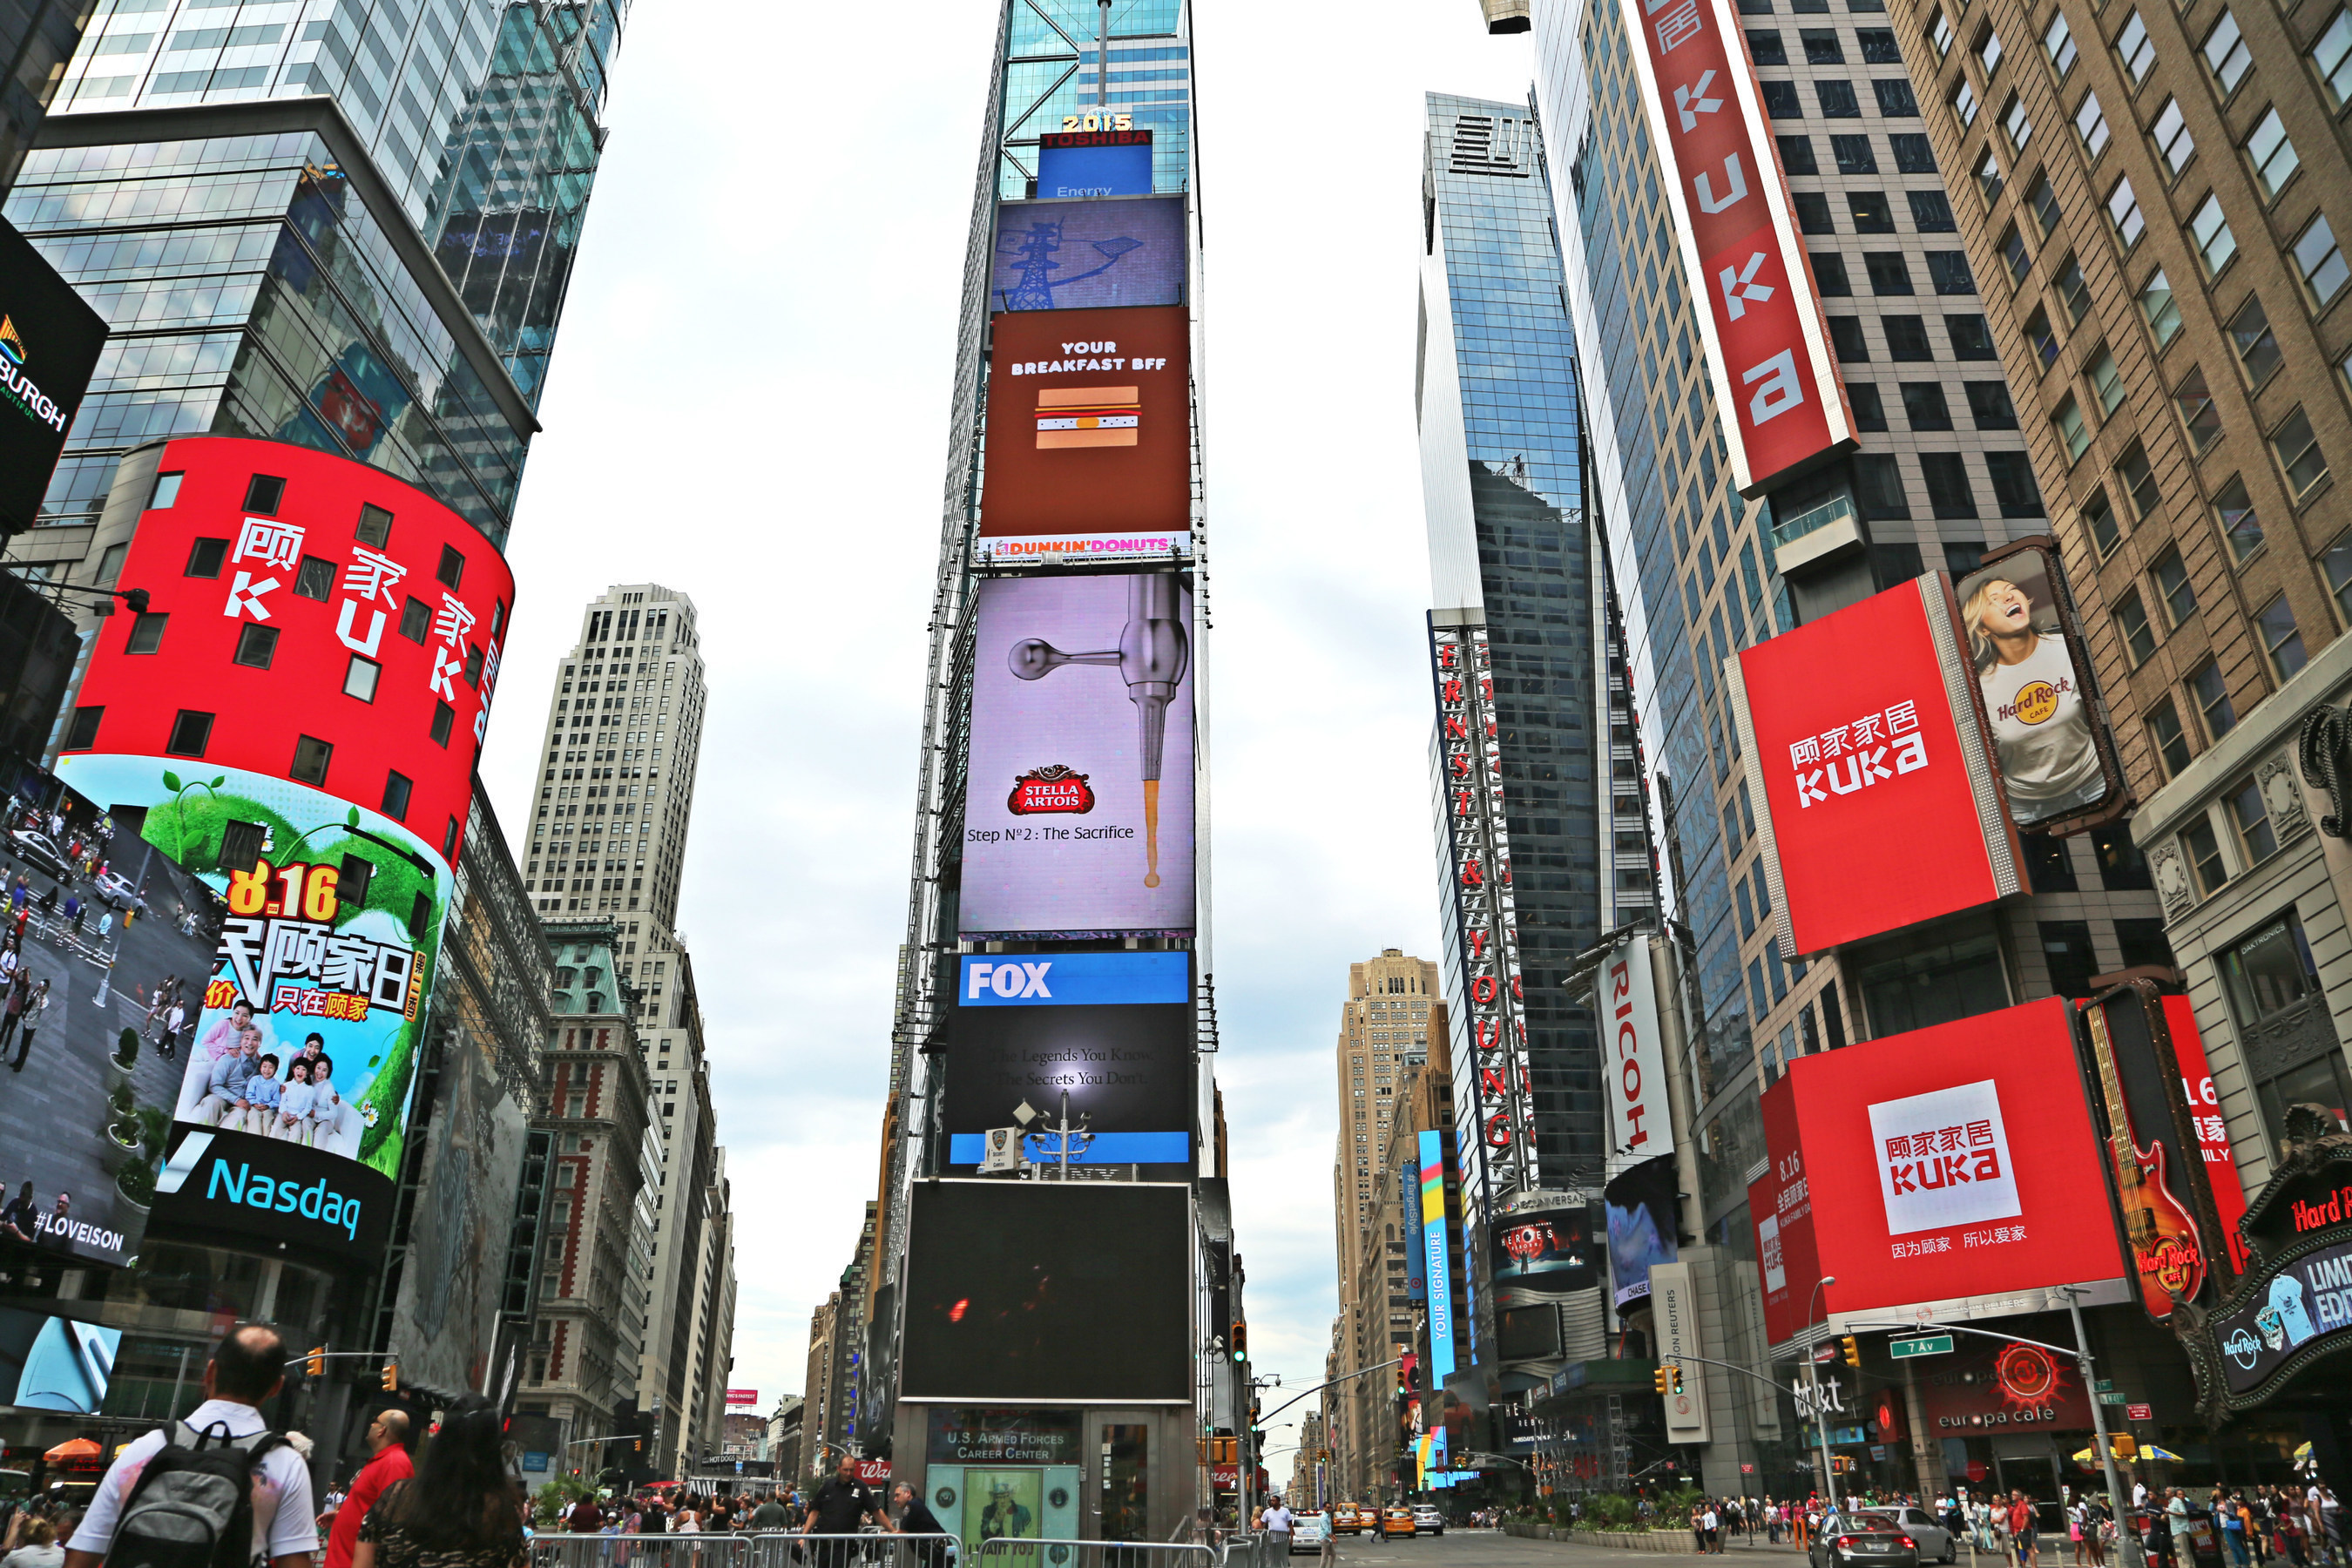 KUKA Home's Short Film About the Importance of Family Debuts on New York's Times Square